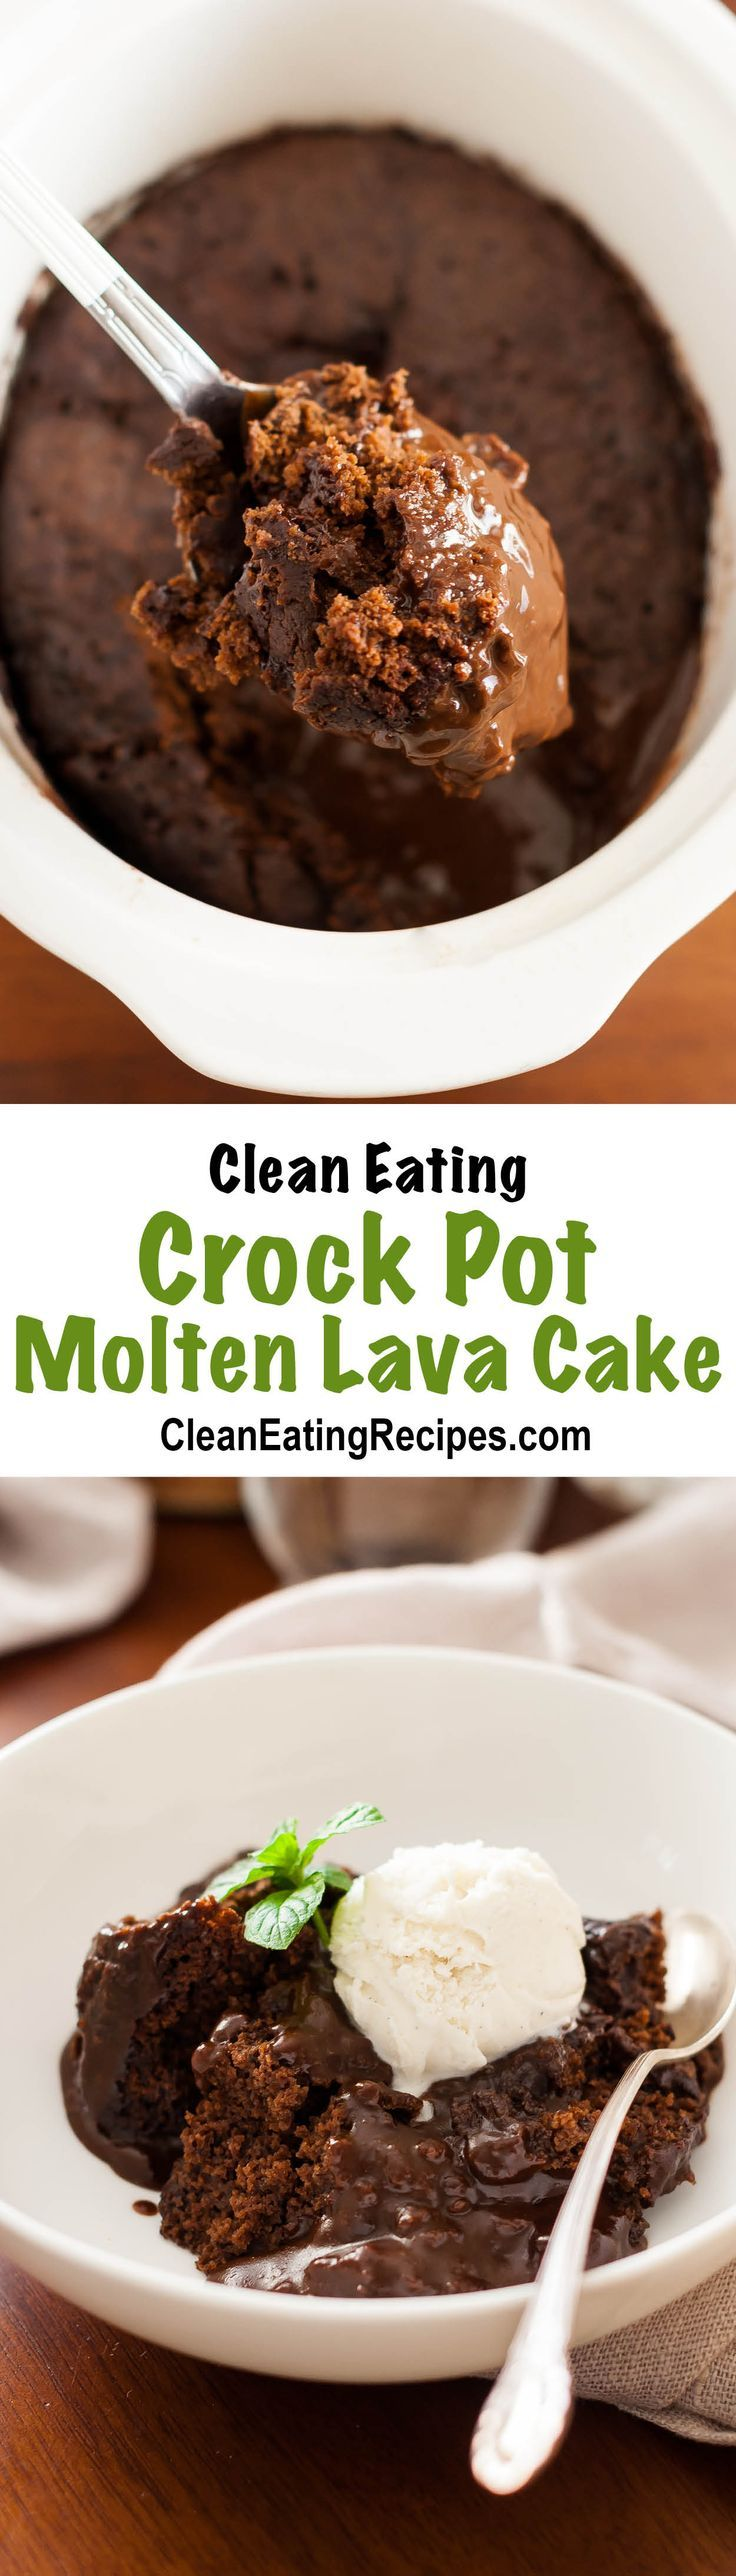 Slow Cooker Molten Lava Cake Recipe {Clean Eating, Gluten Free, Dairy Free} - this looks so good and fun to make. I'm going to get this ready before dinner for my family party tomorrow and then by the time we eat dinner, dessert will be hot and ready to eat.